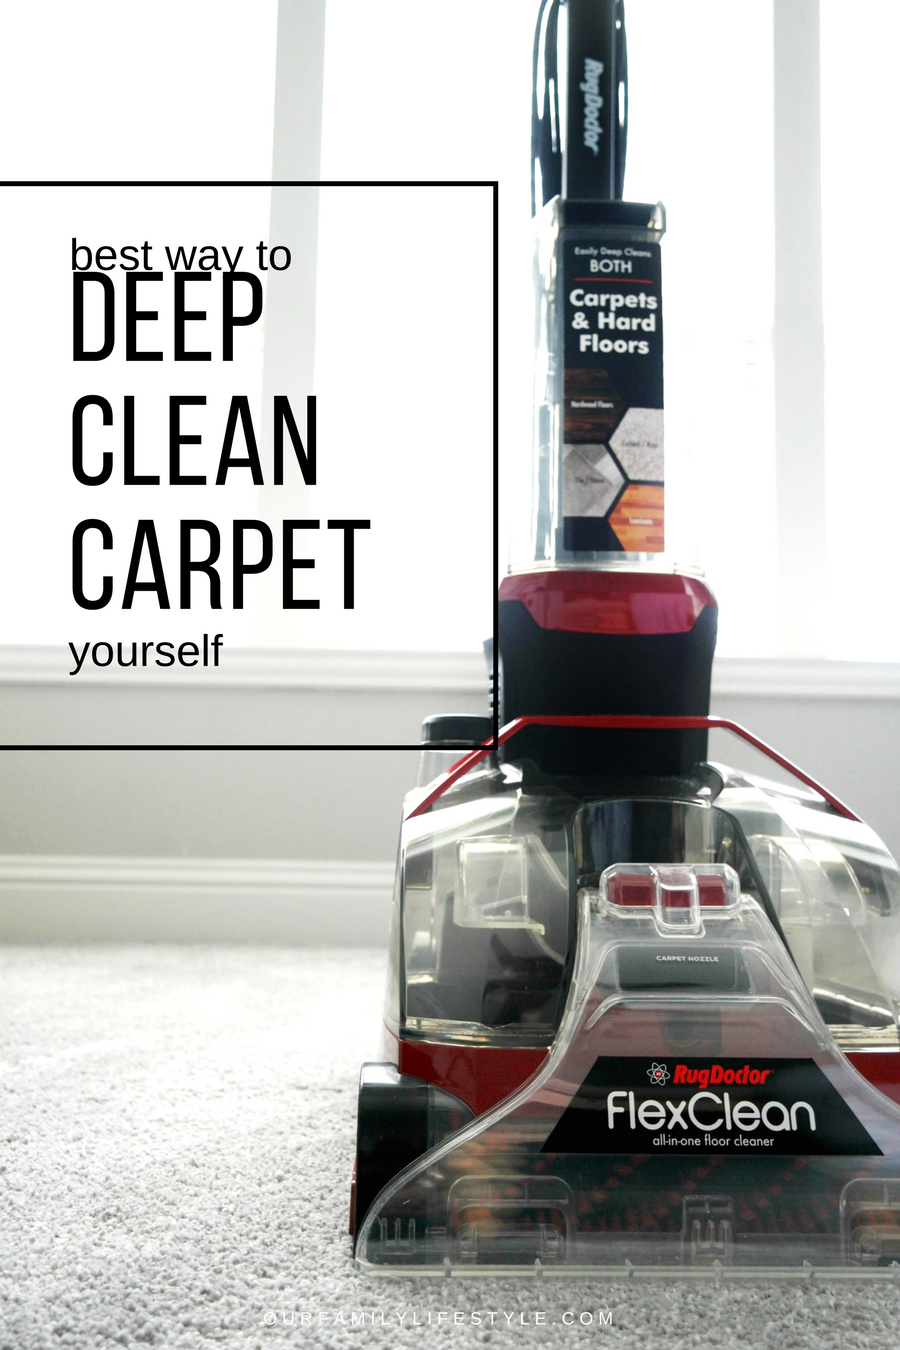 Best Way to Deep Clean Carpet Yourself